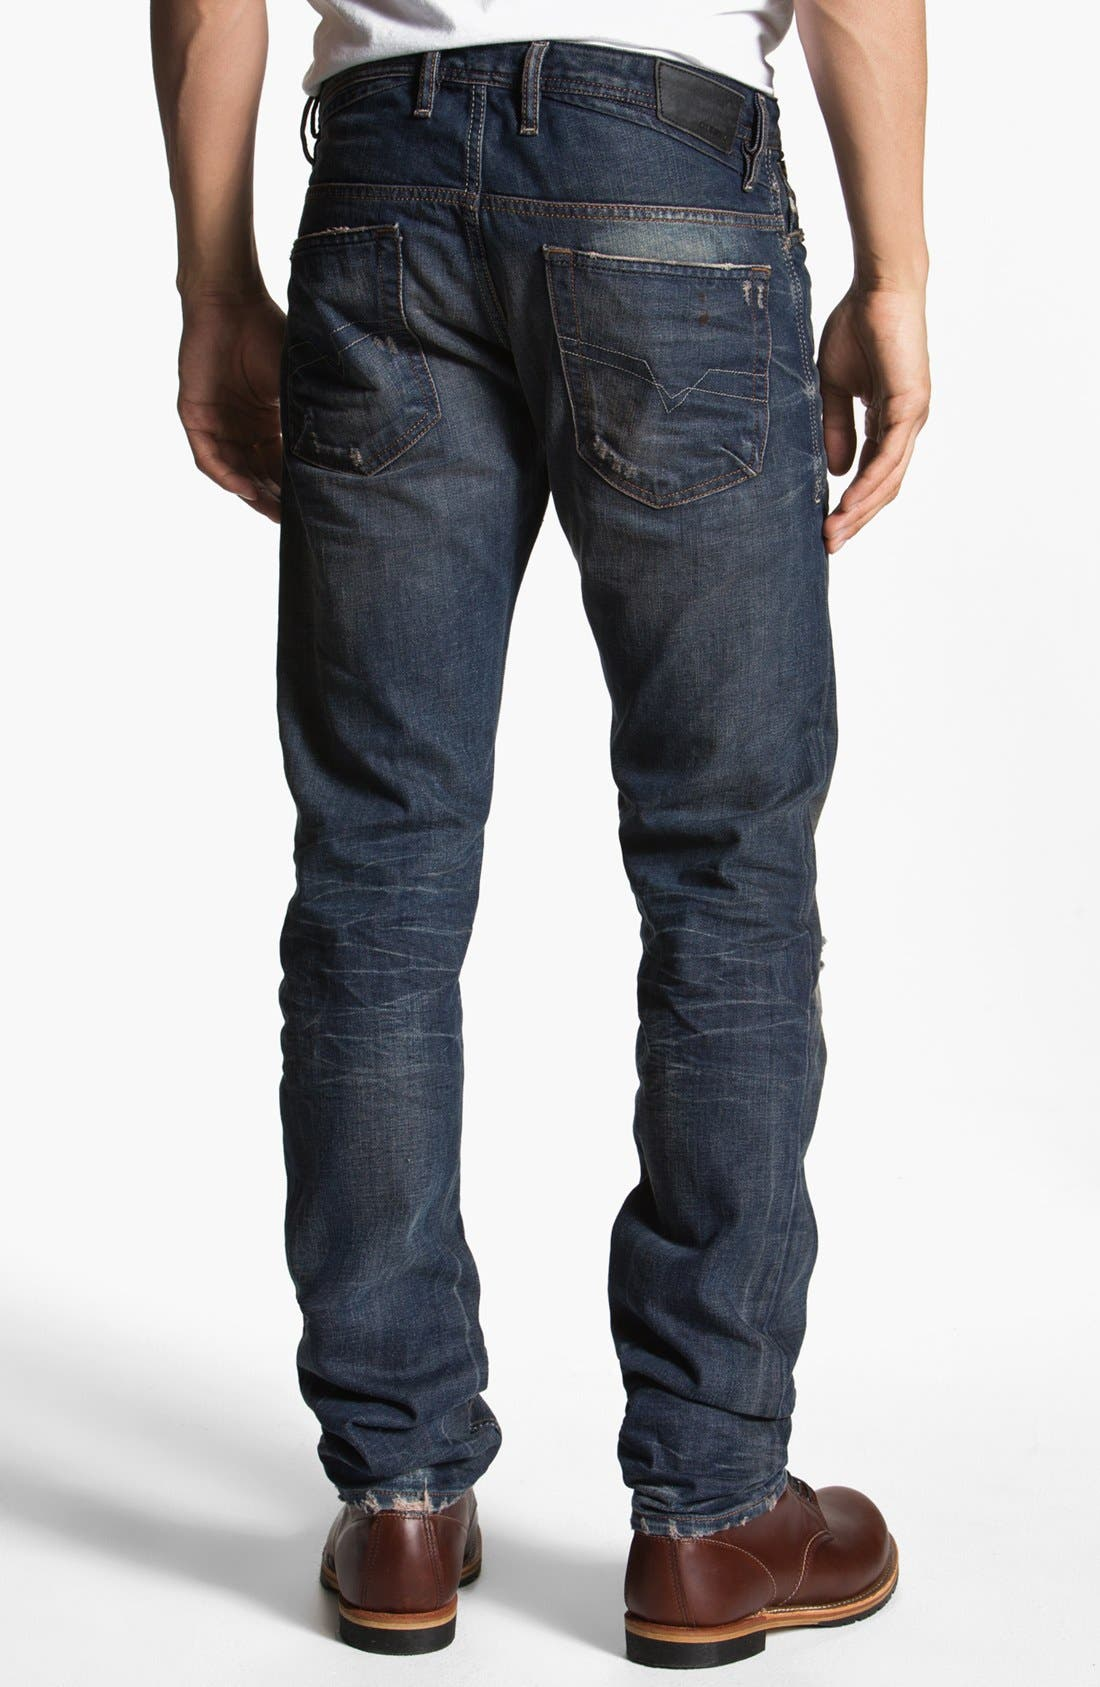 DIESEL<SUP>®</SUP>, 'Shioner' Skinny Fit Jeans, Main thumbnail 1, color, 400